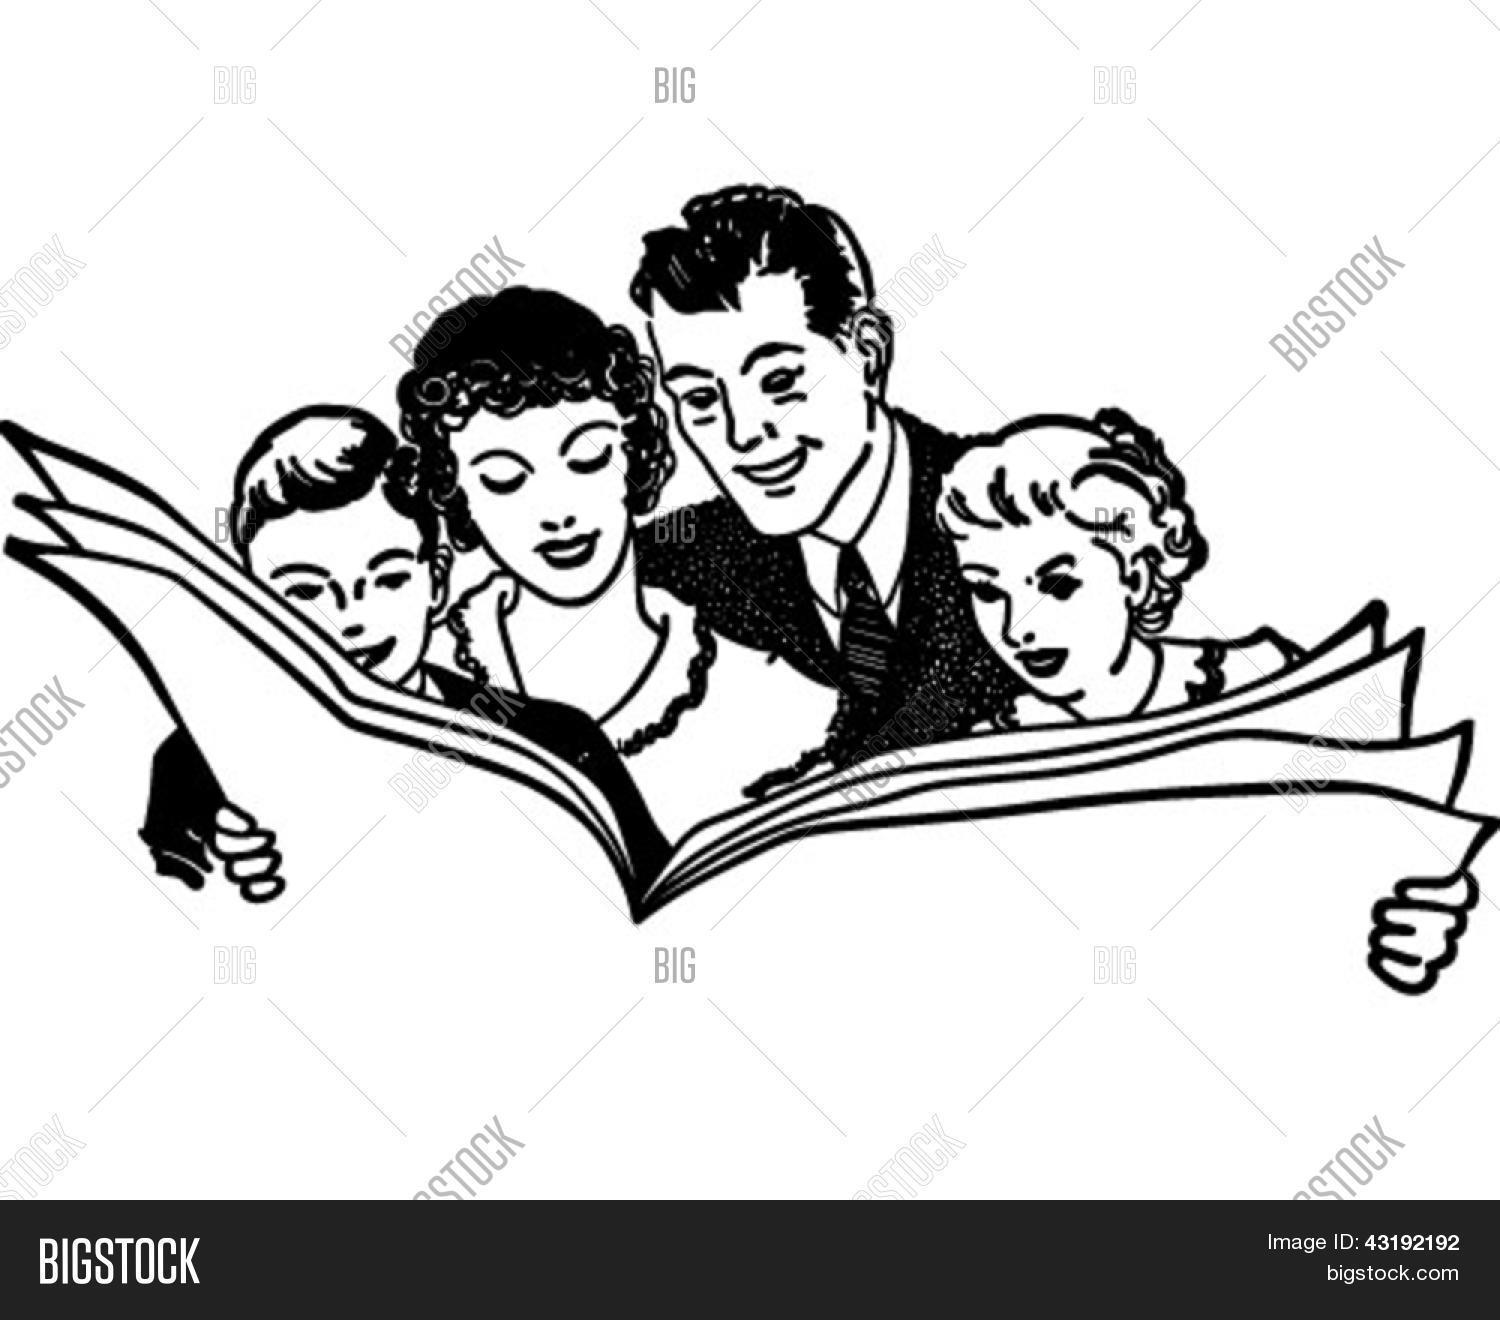 Family reading clipart black and white clip art royalty free download Family reading clipart black and white 5 » Clipart Portal clip art royalty free download